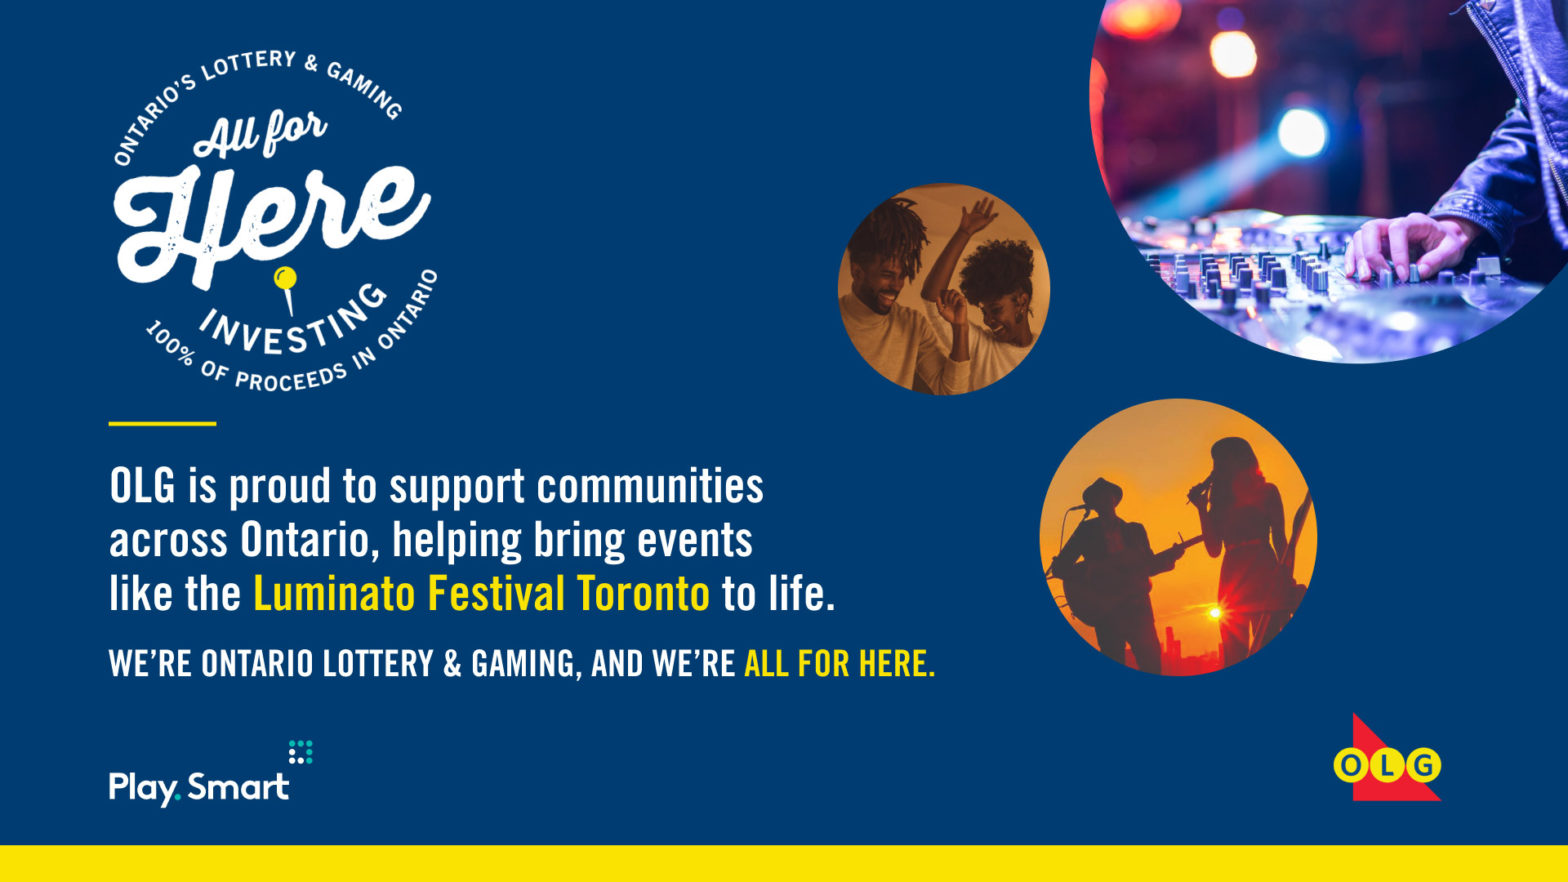 Blue background with three different sized circles on the right with images of mucisians within. To the left is text that reads OLG is proud to support communities across Ontario, helping bring events like Luminato Festival to life. We are Ontario Lottery and Gaming, and we're all for here.